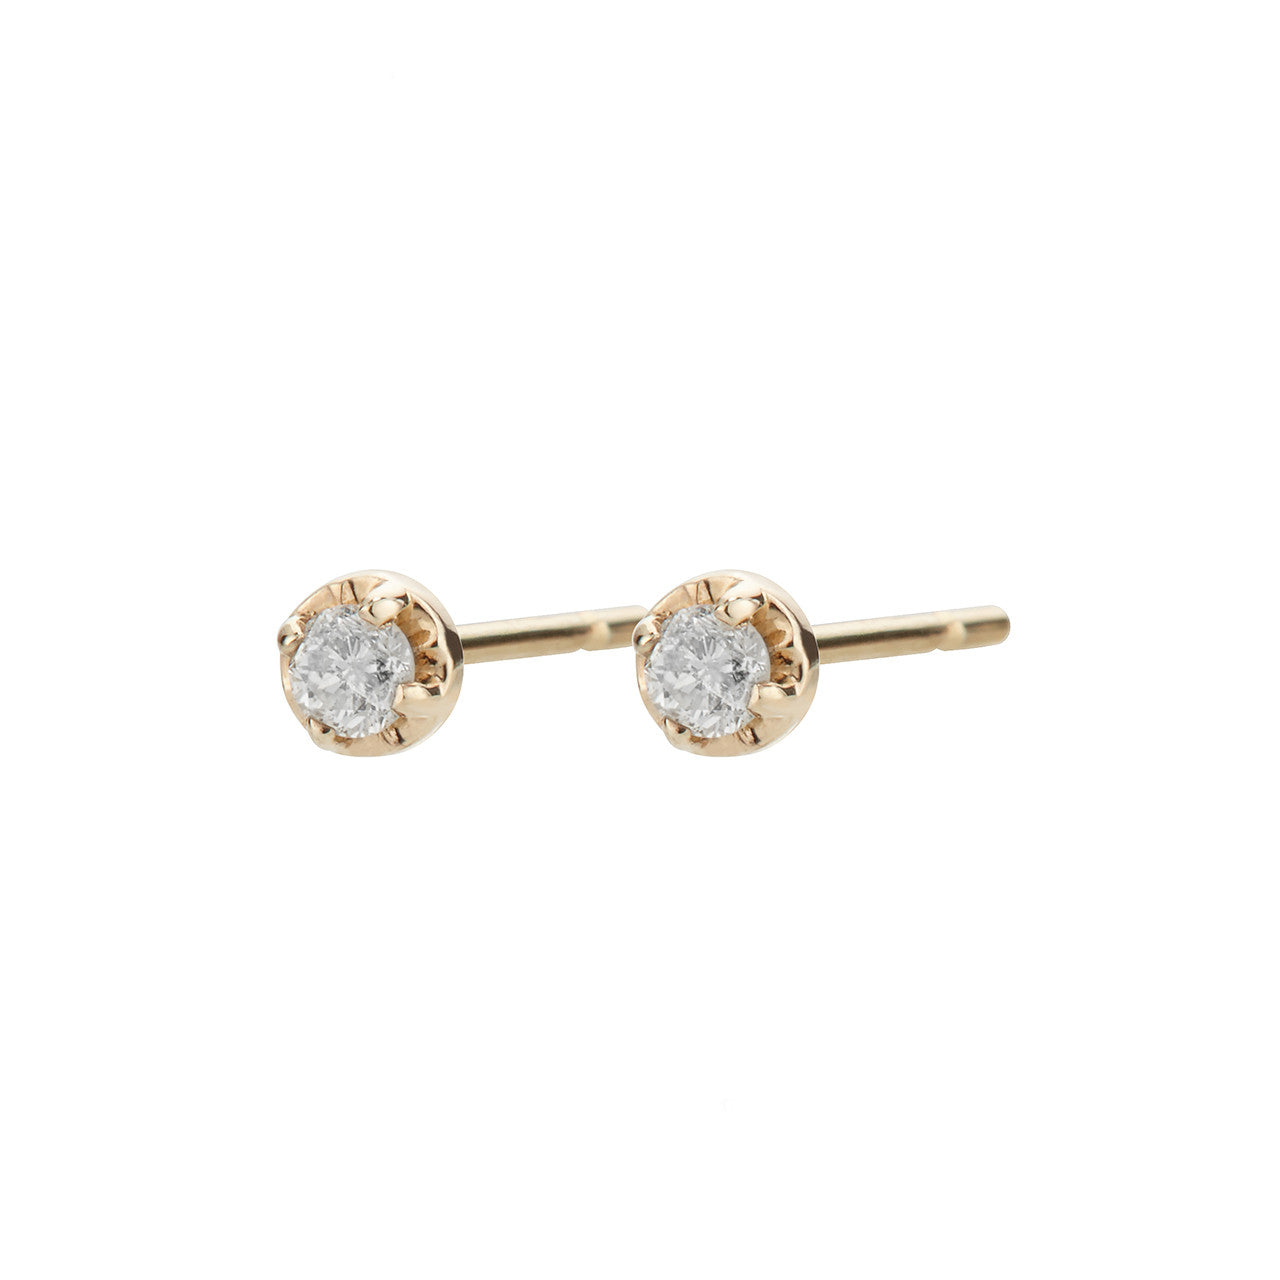 Prong Studs, White Diamond